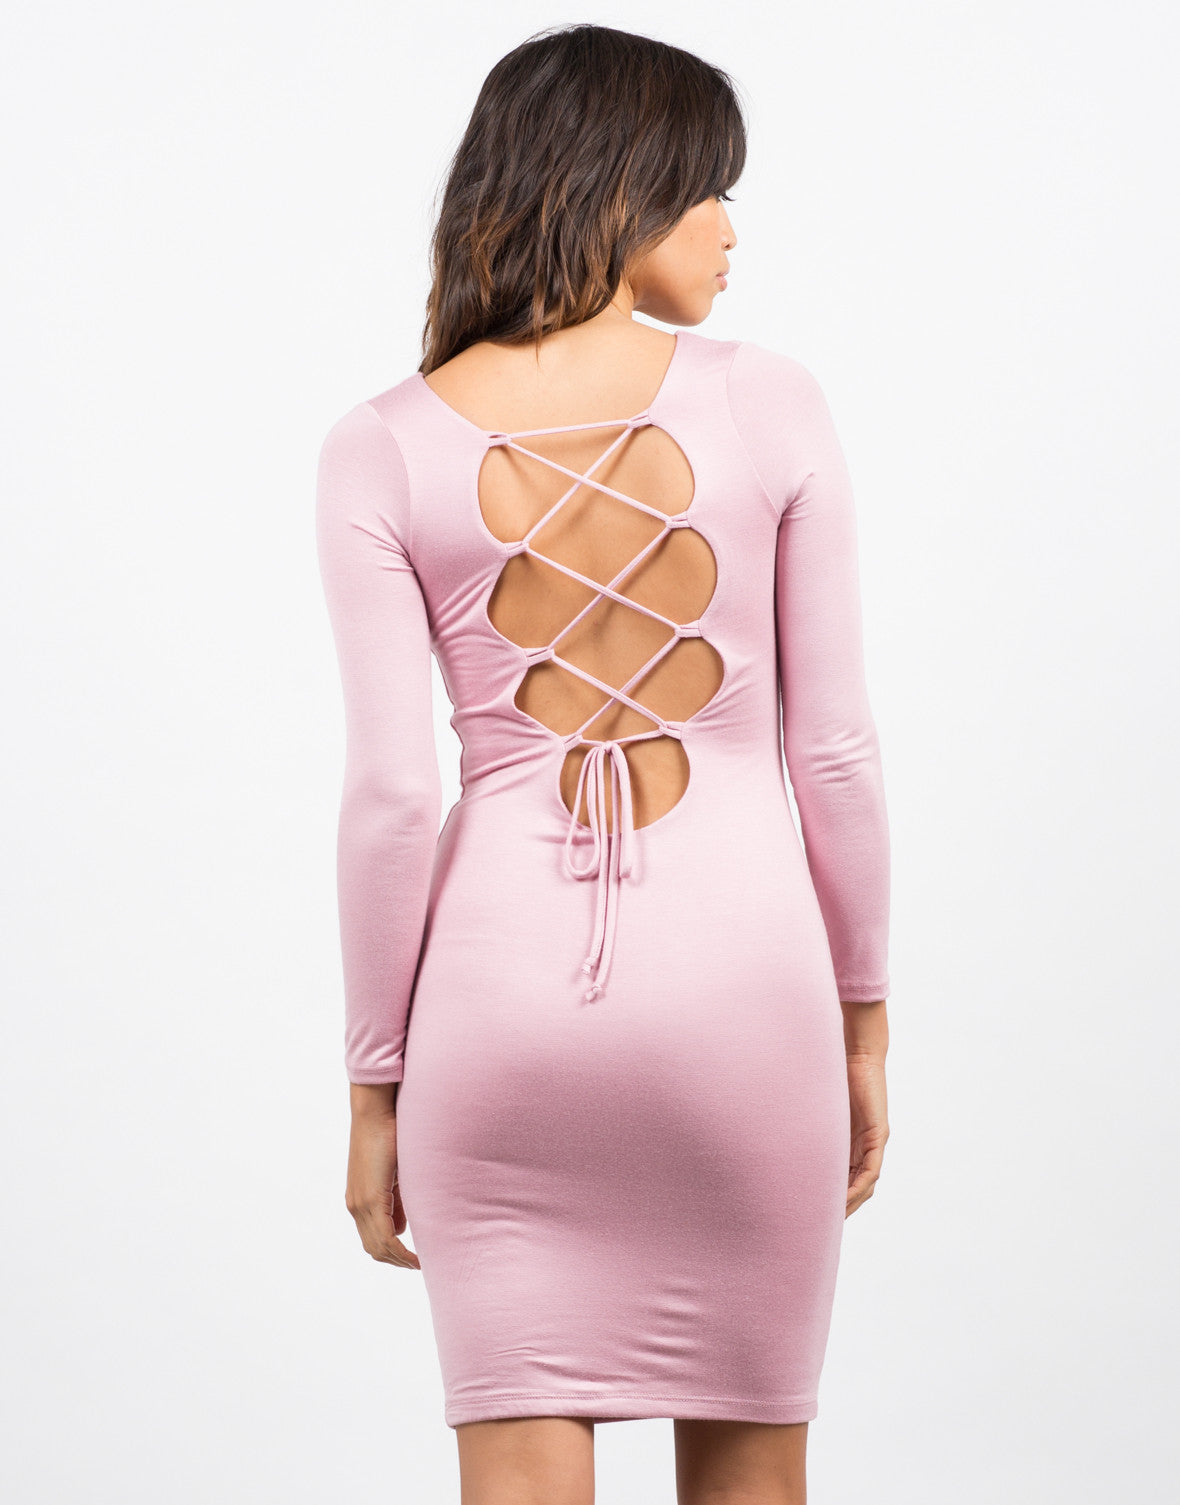 Back View of Laced Up Dress